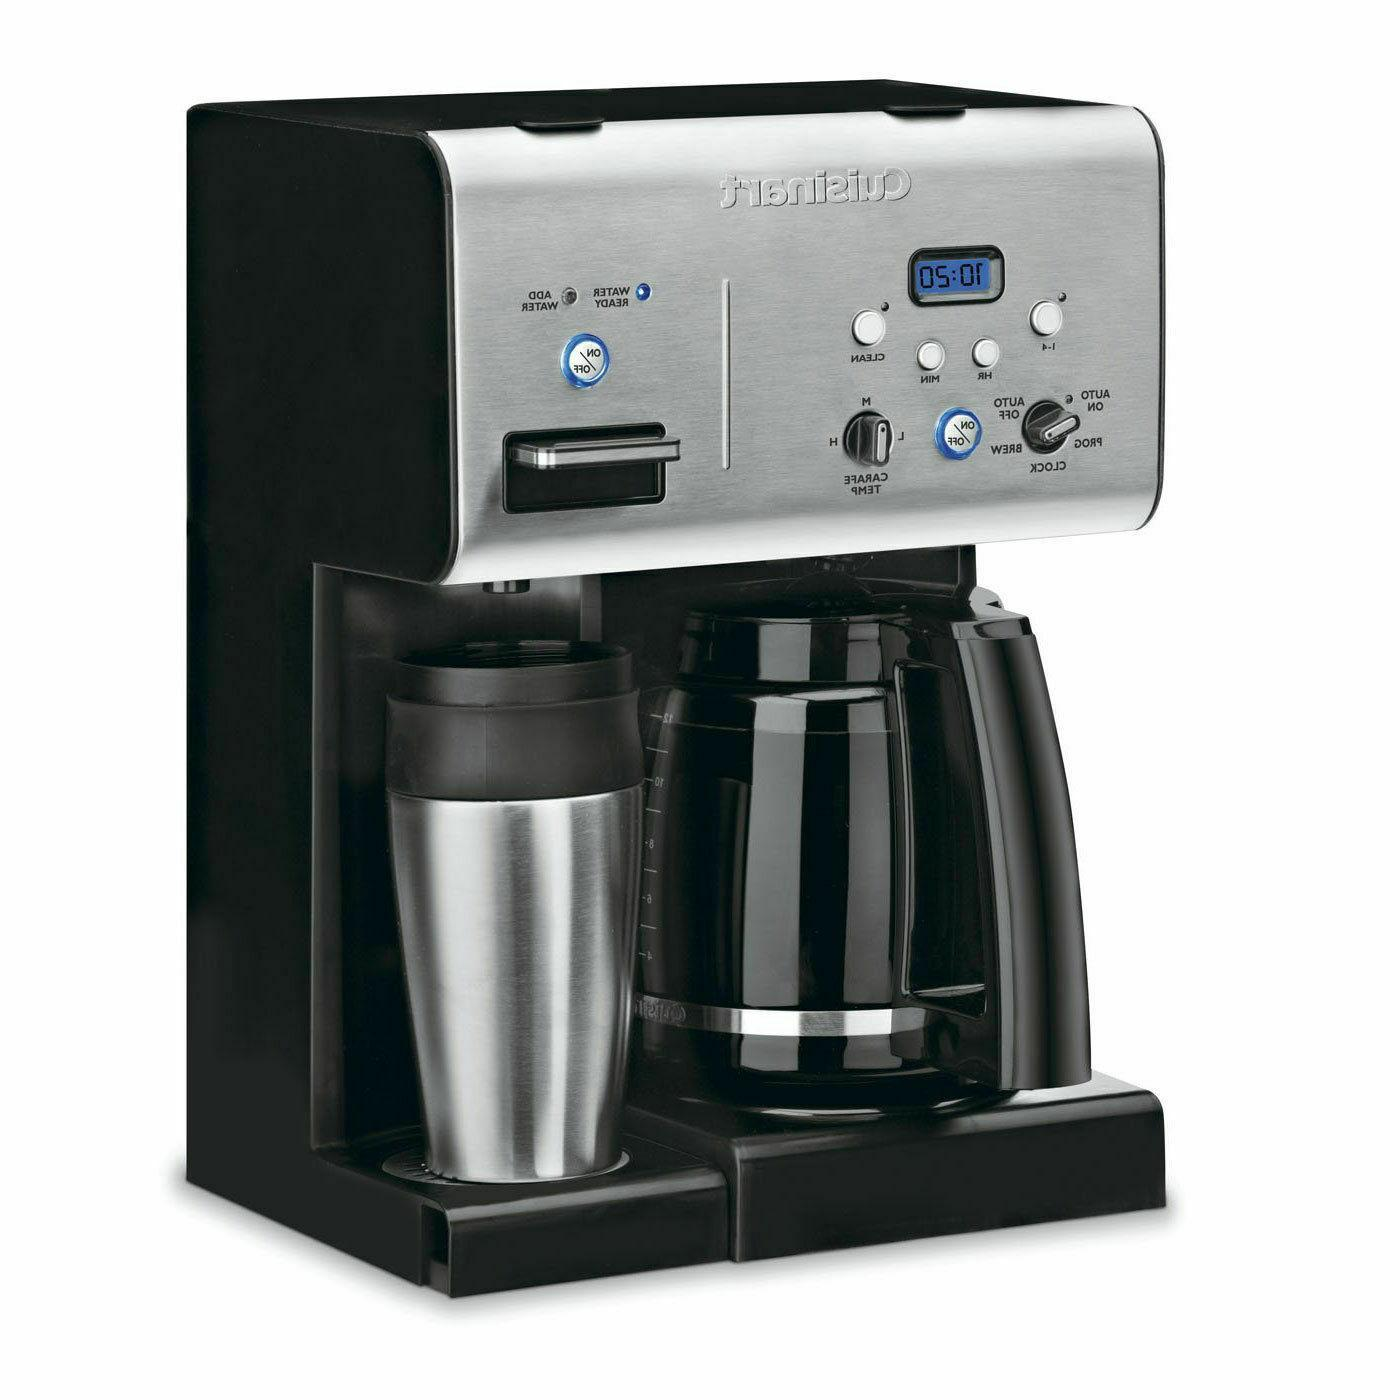 Cuisinart CHW-12 Coffee 12-Cup Programmable Hot